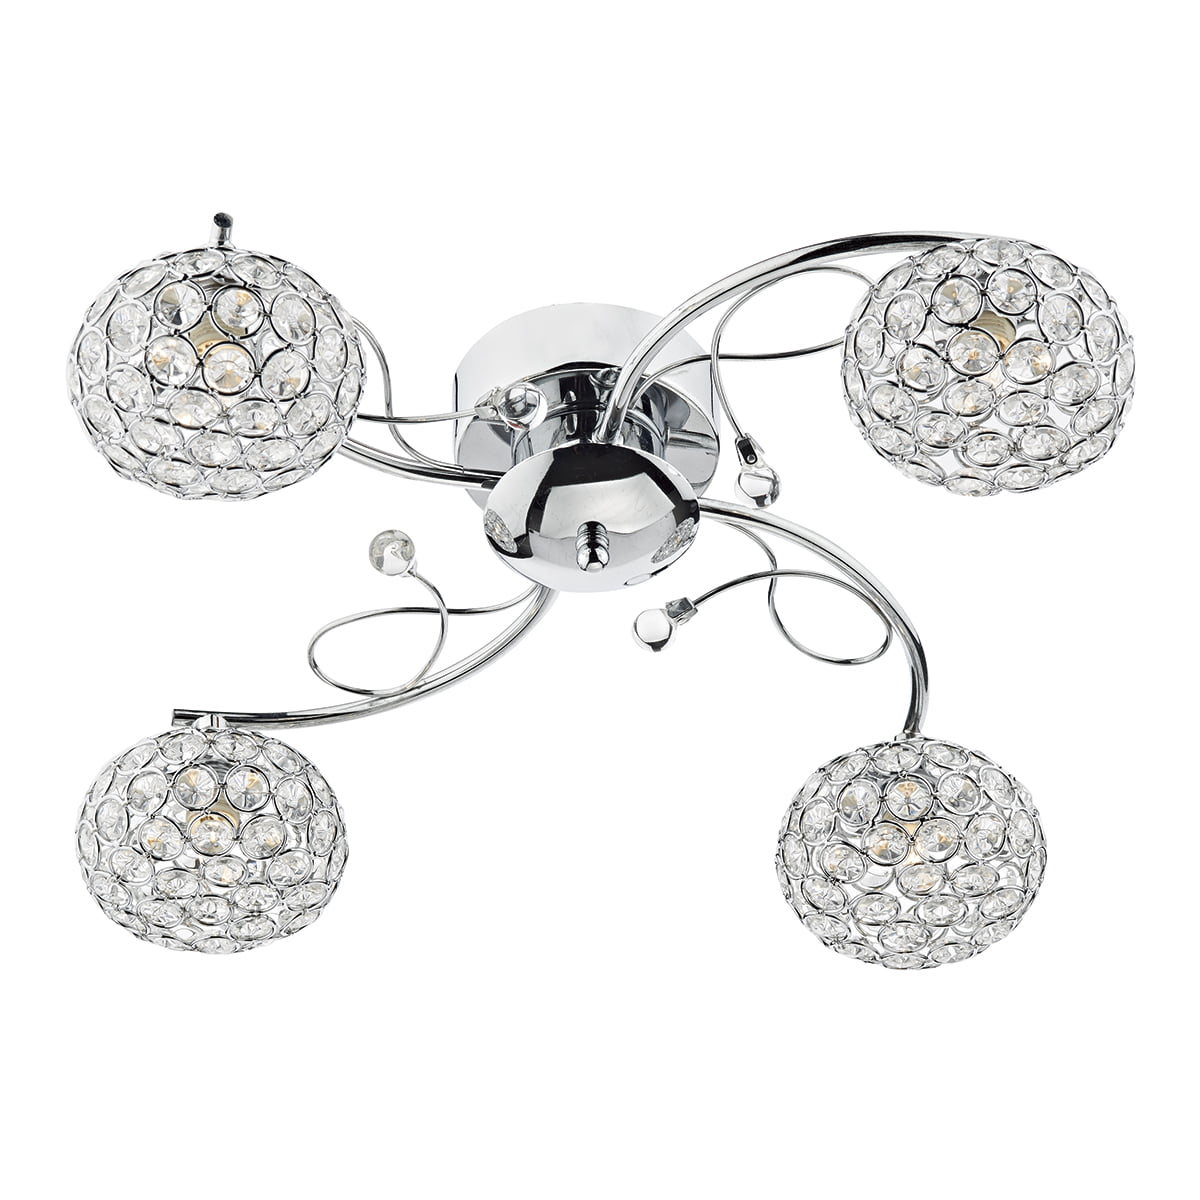 Impex EDE0450 Eden 4 Light Semi Flush Fitting in Chrome